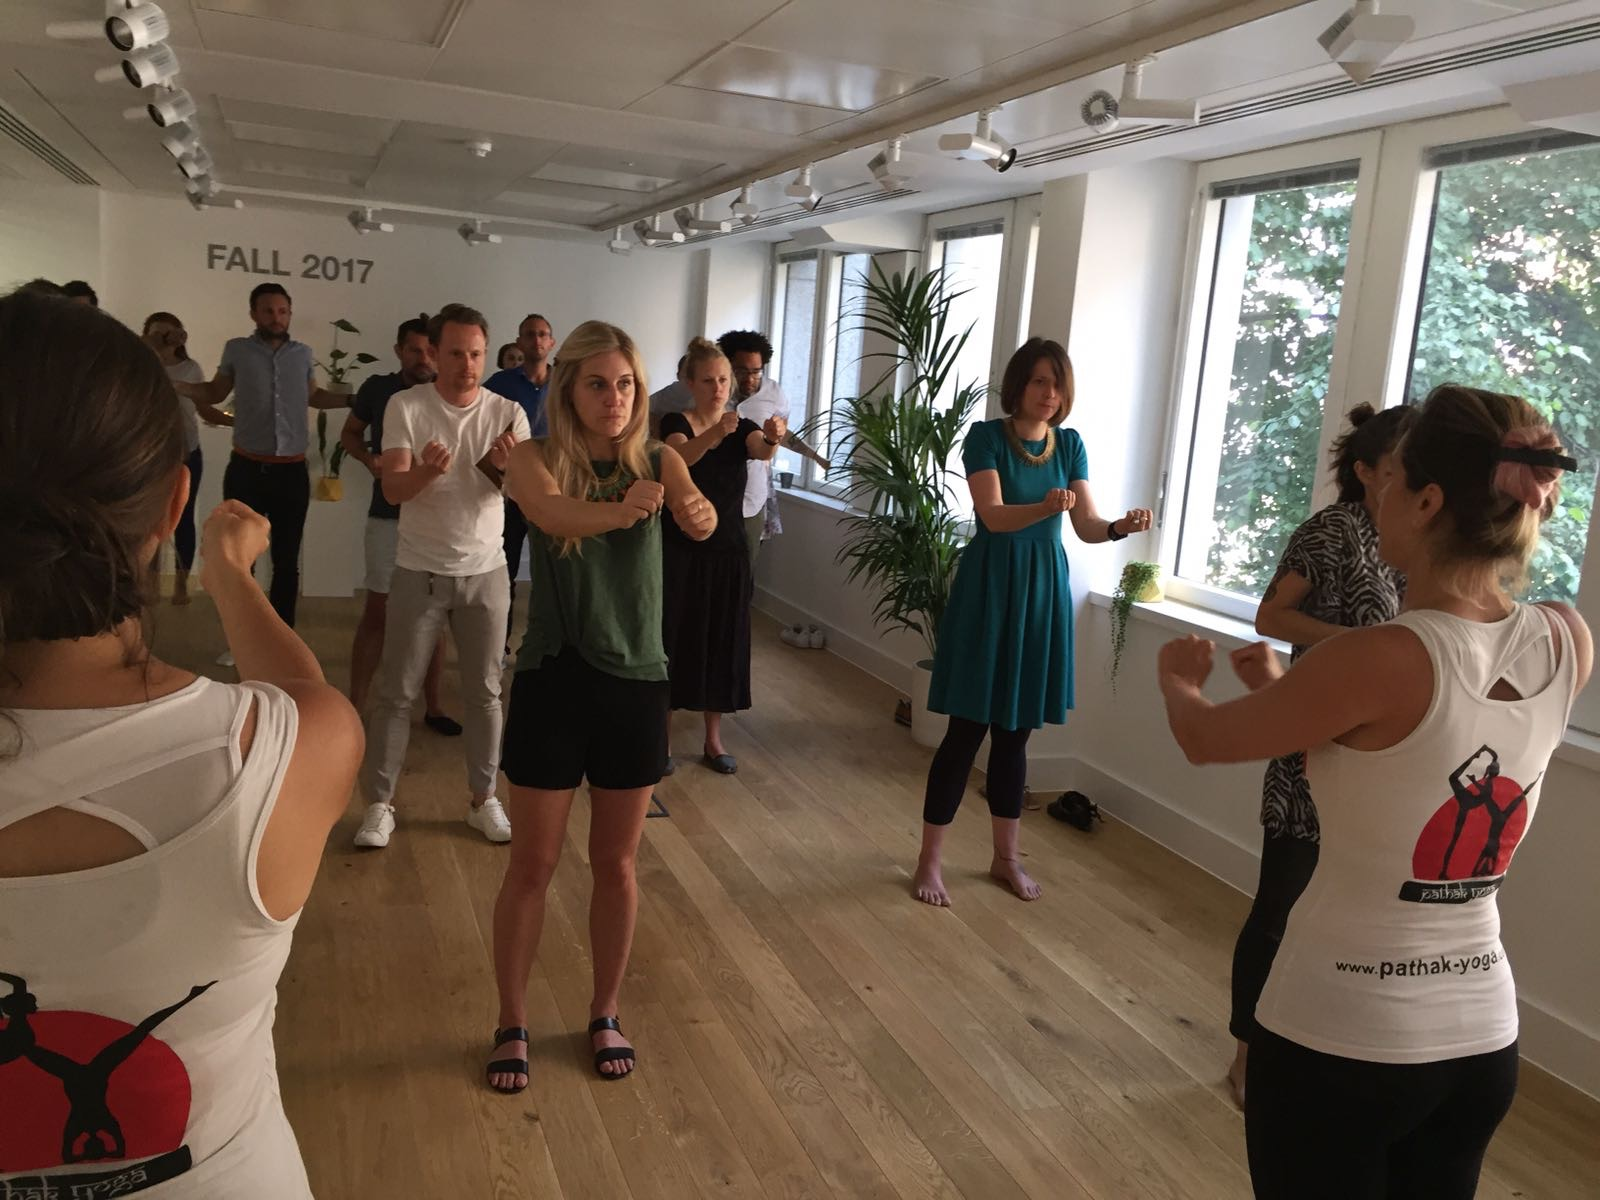 Standing yoga at GAP Suksham Vyayam yogic swimming workplace yoga, office yoga, yoga everywhere, wellness week, desk yoga, chair yoga, corporate health and wellbeing champion, yoga London